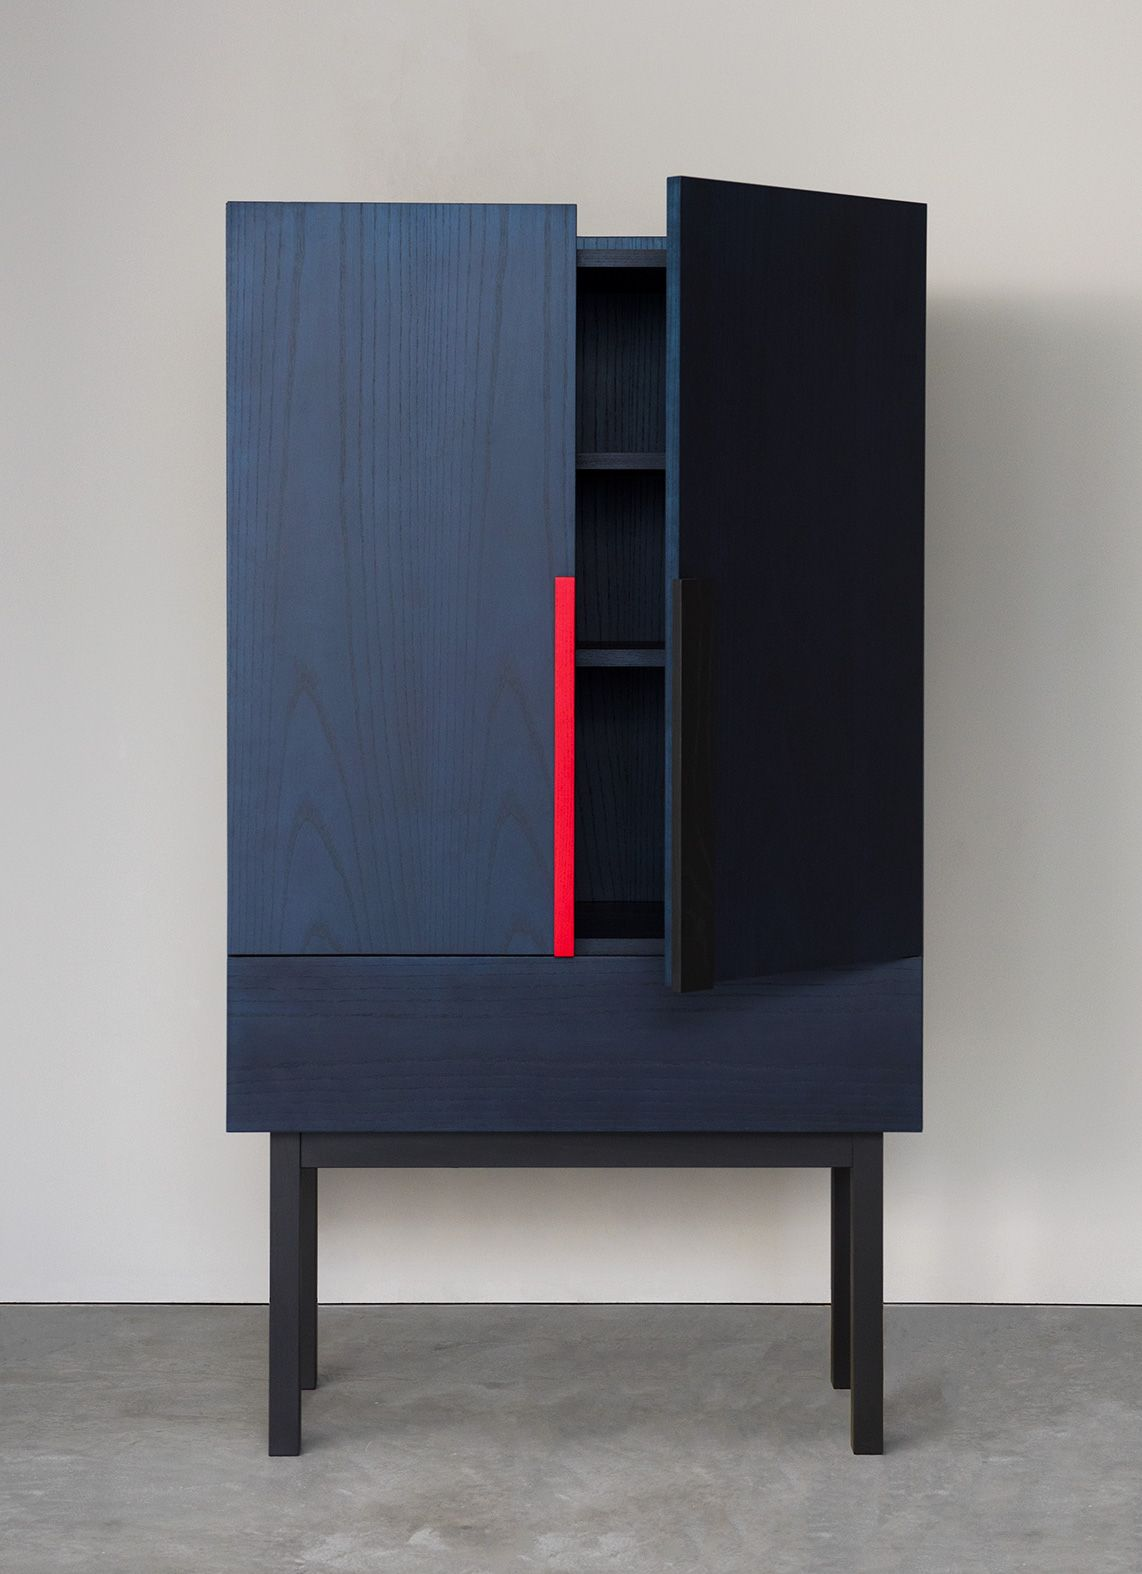 Aiizome storage cabinet by Zoe Mowat, painted using sumi ink, red dye and two shades of Japanese indigo